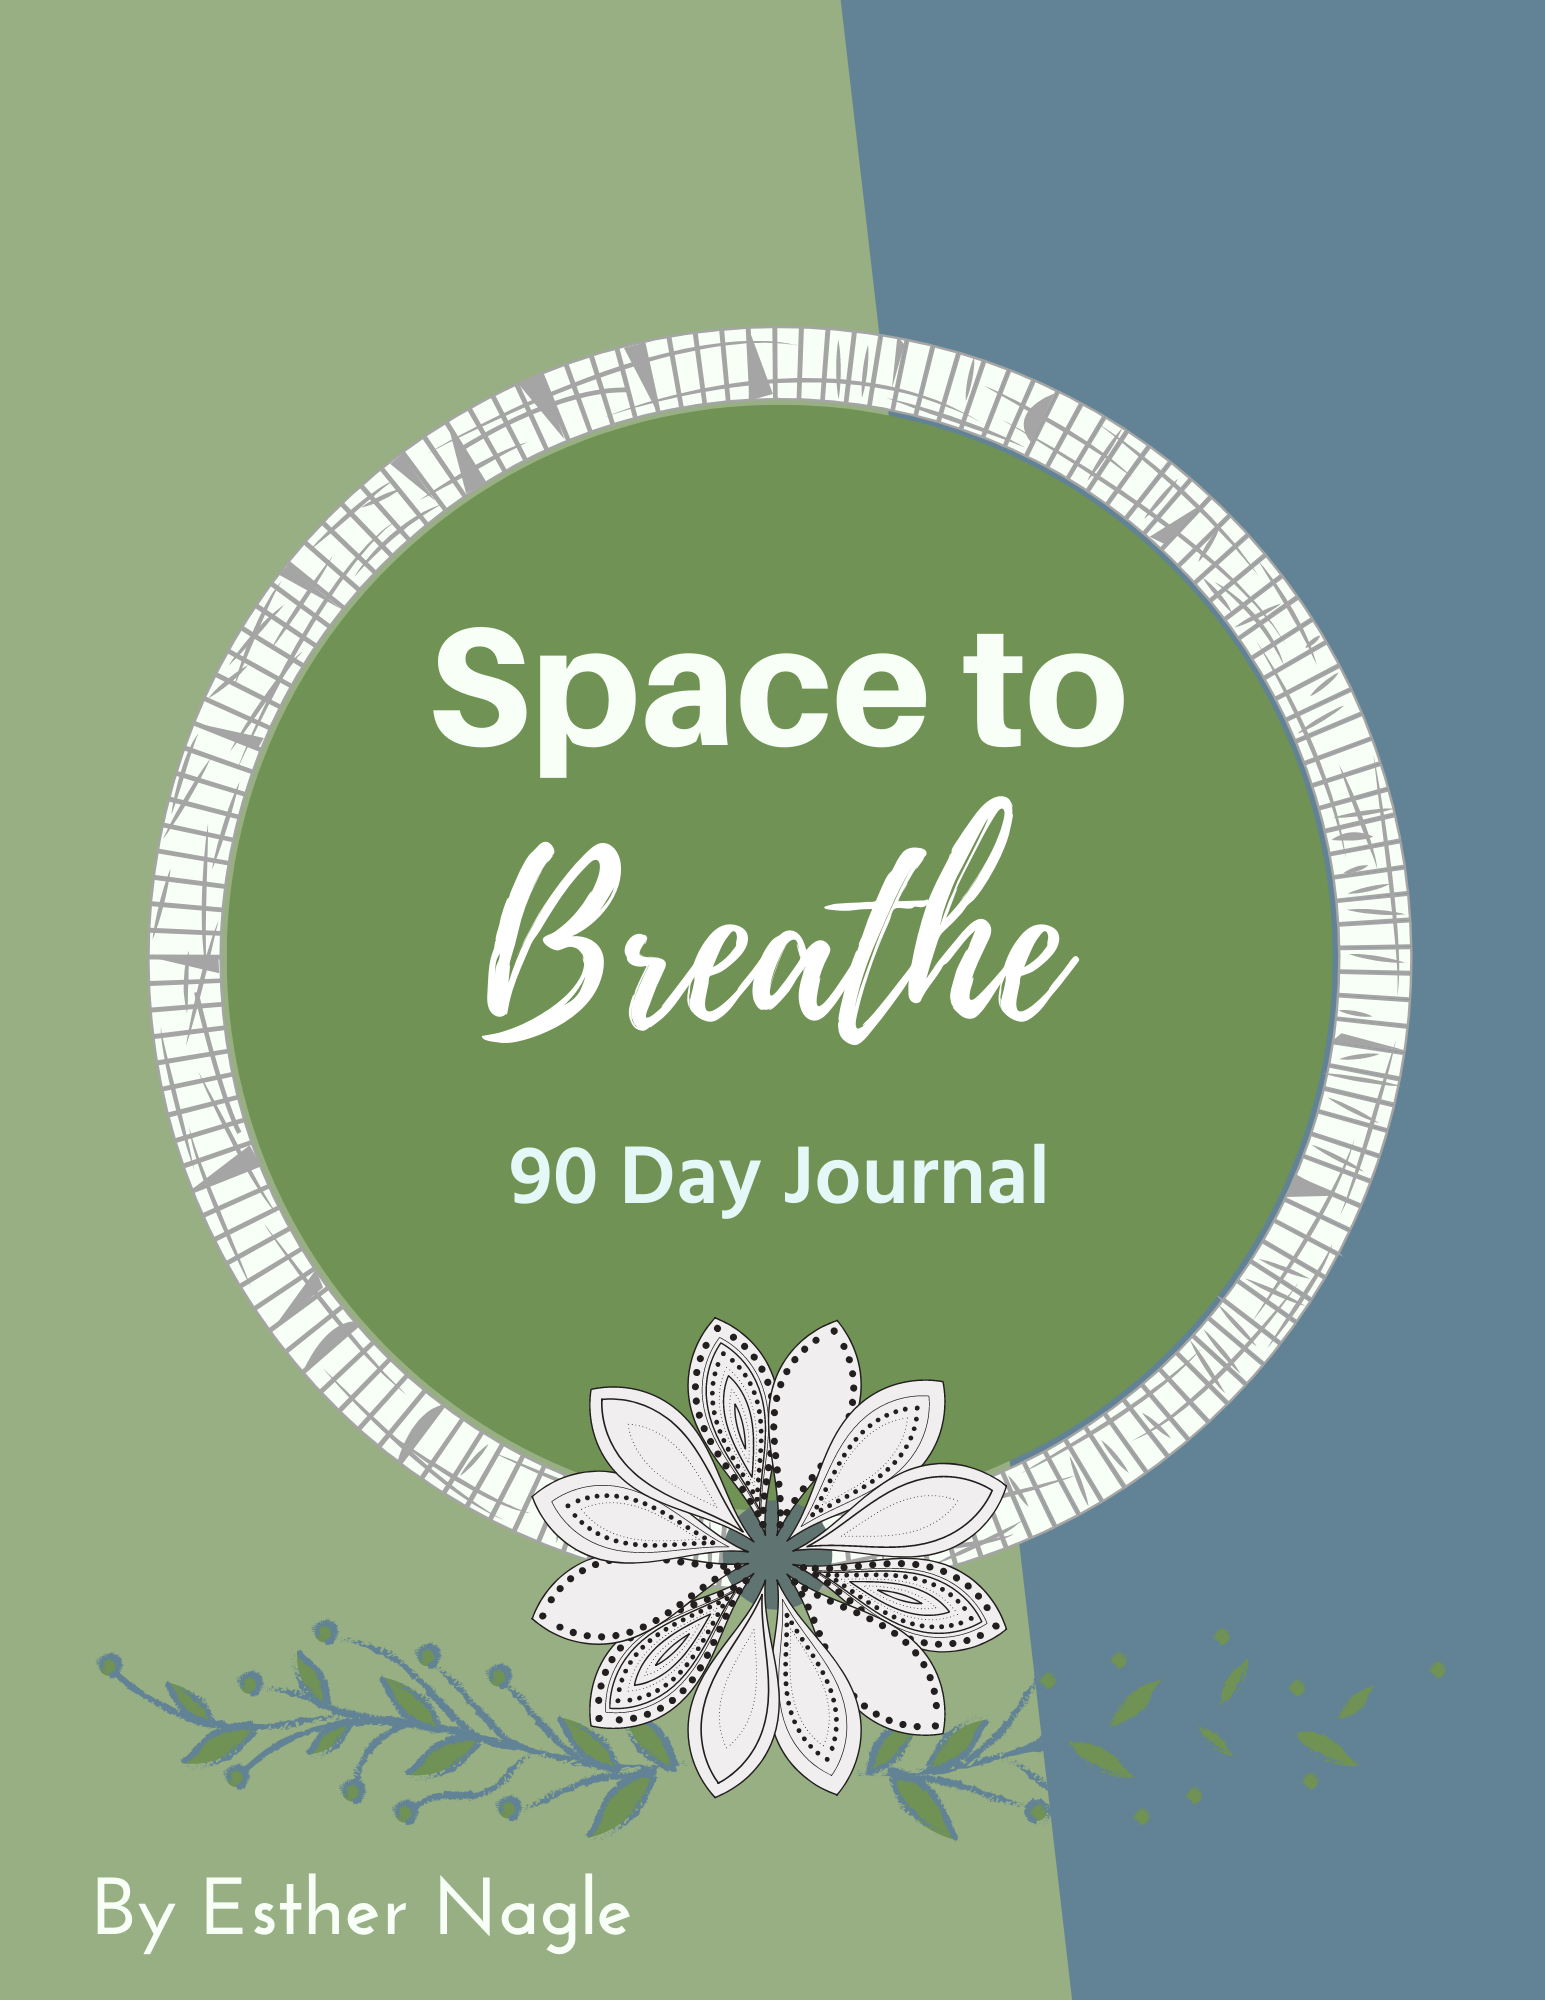 space to breathe journal cover